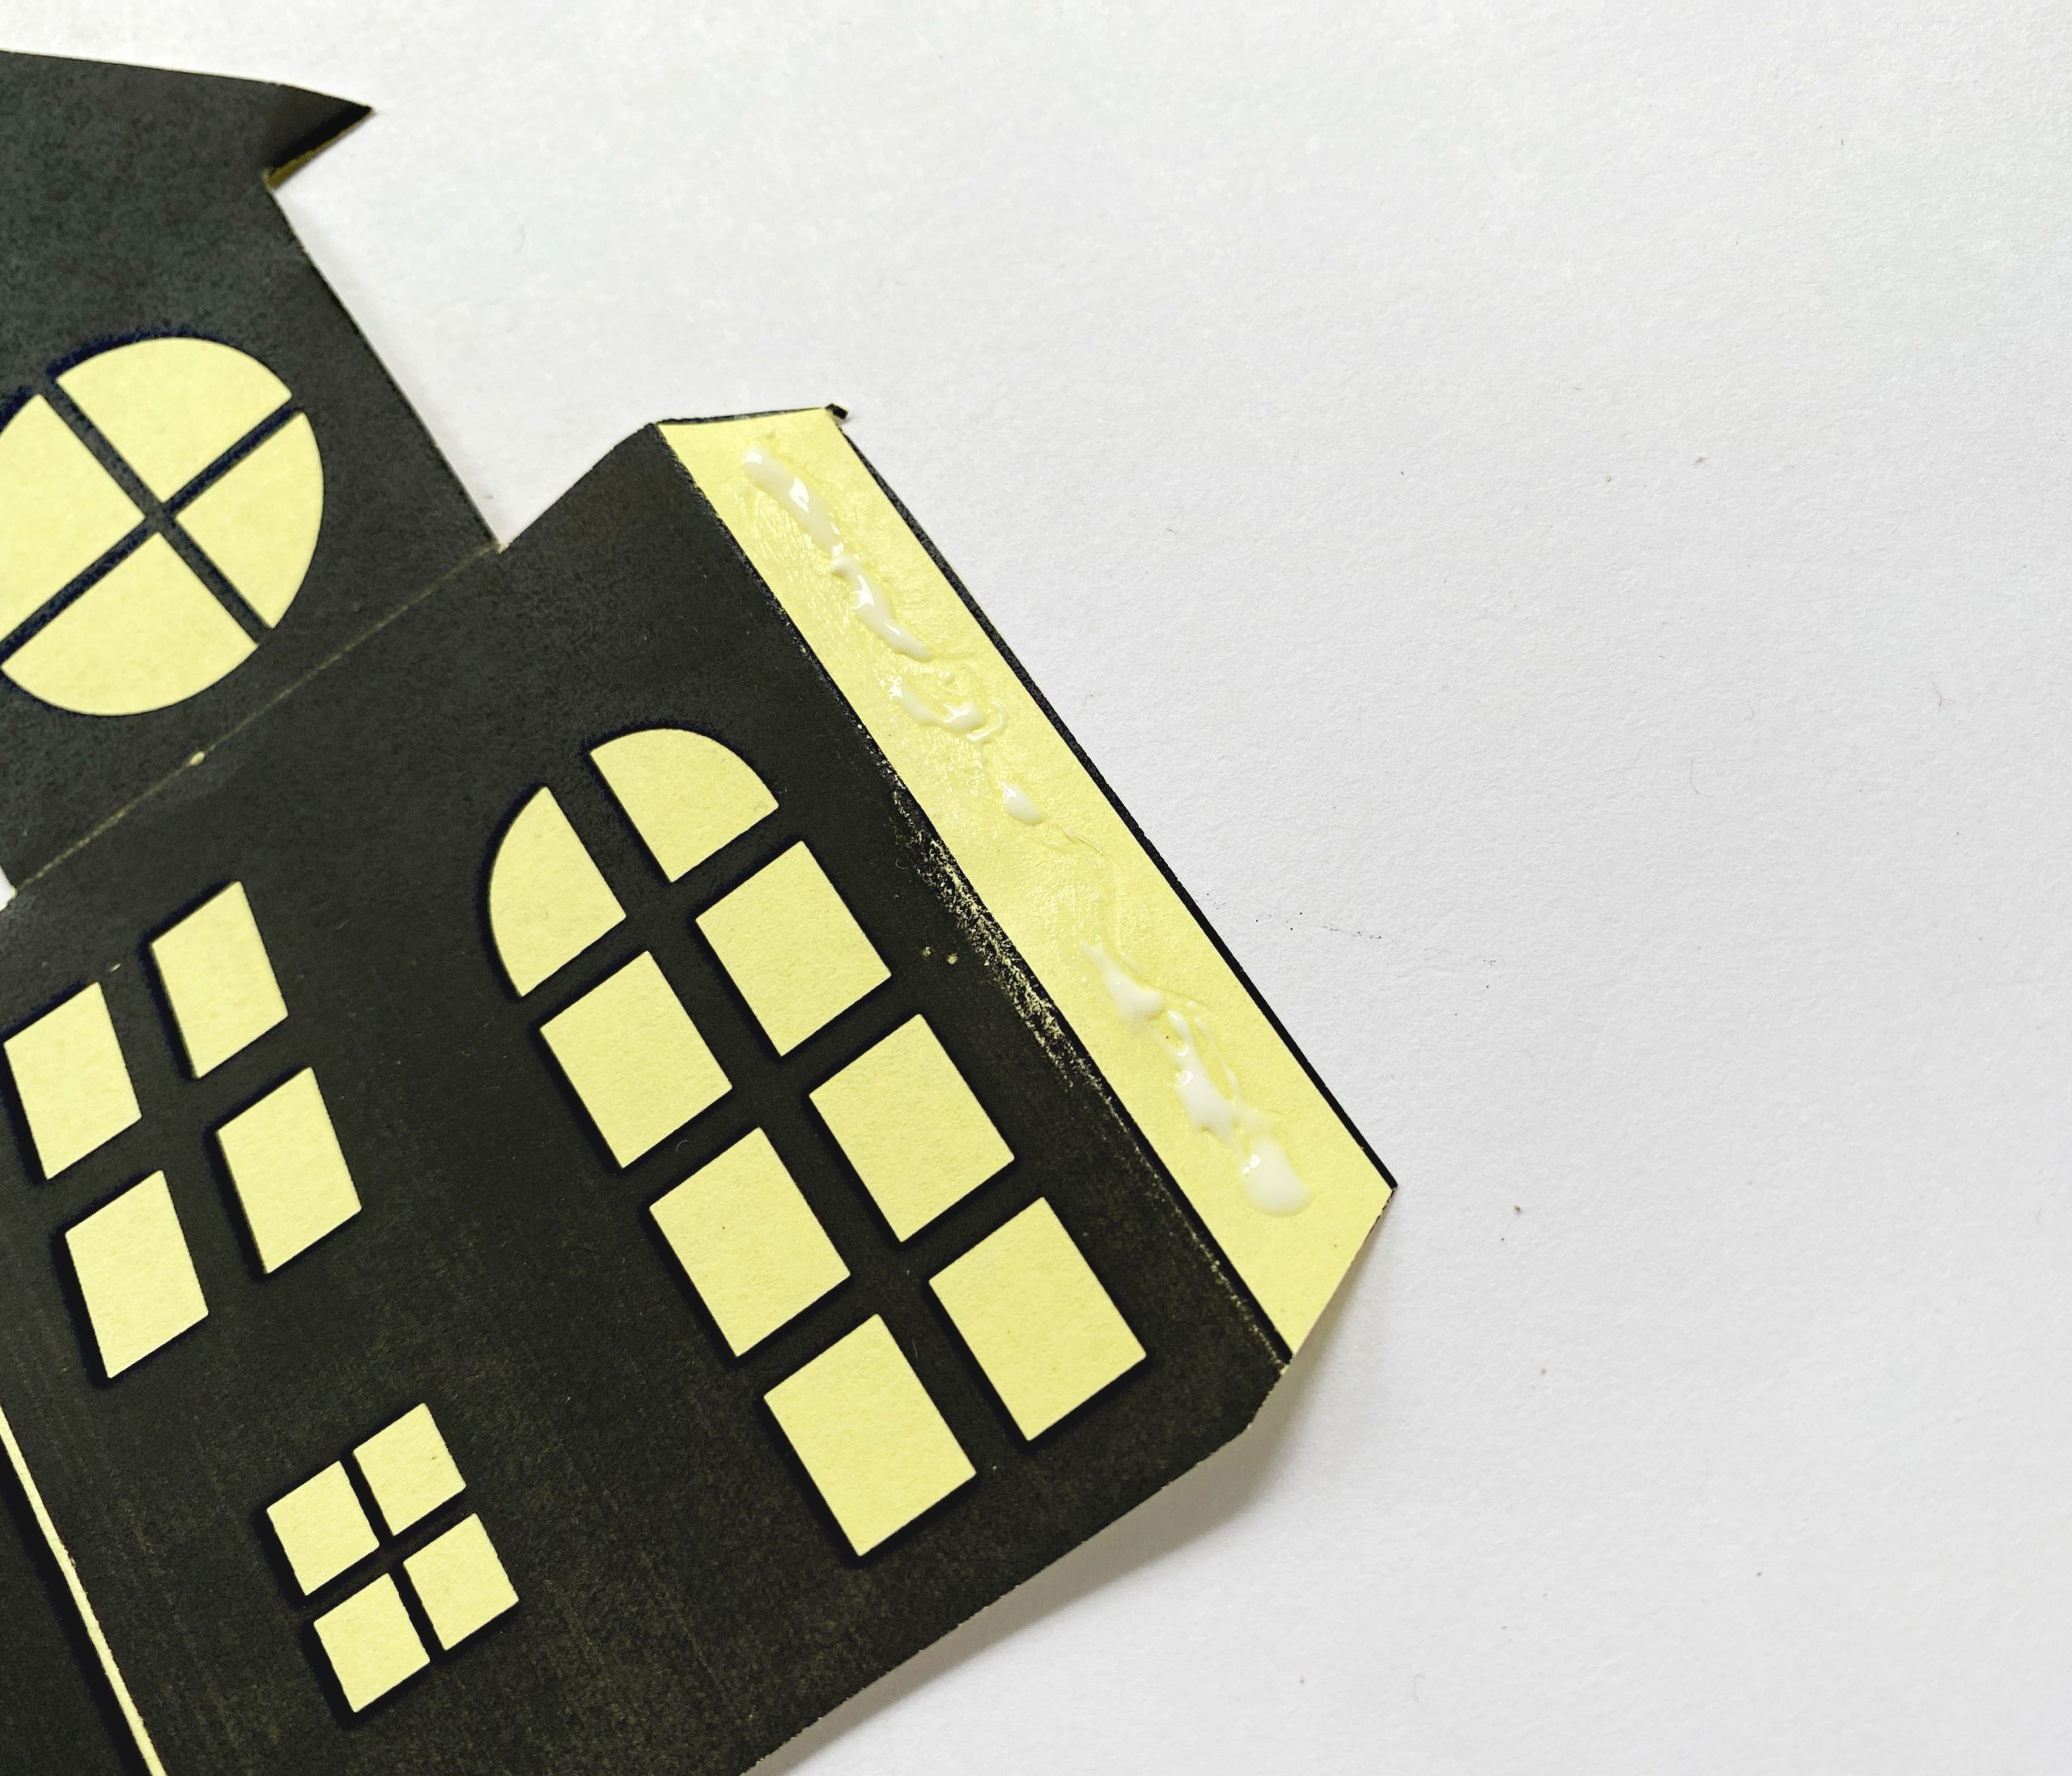 3D haunted house craft instructions